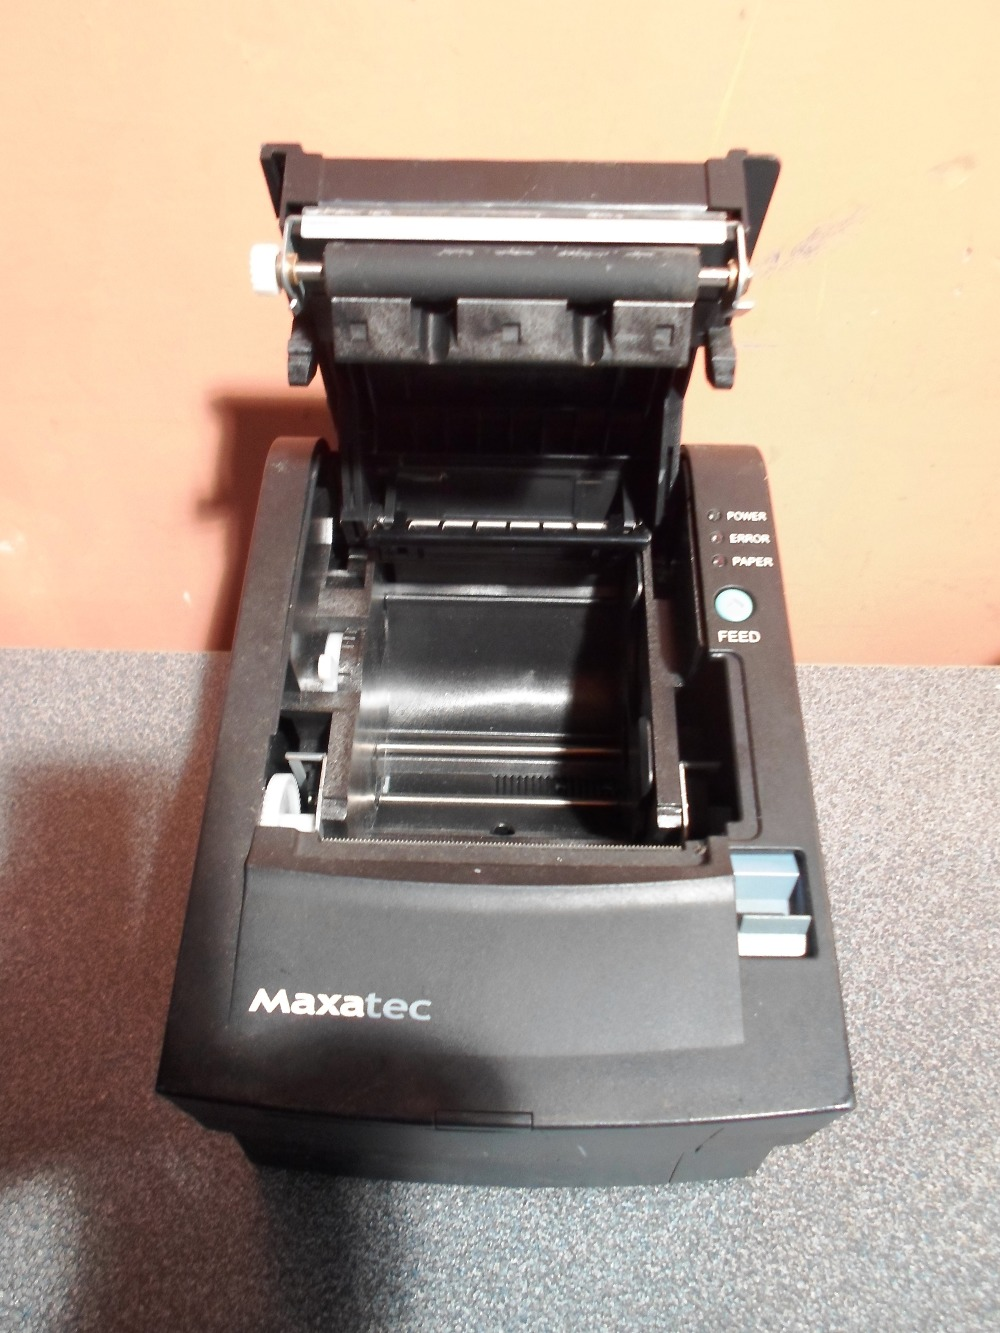 Maxatec MT-150 User Manual